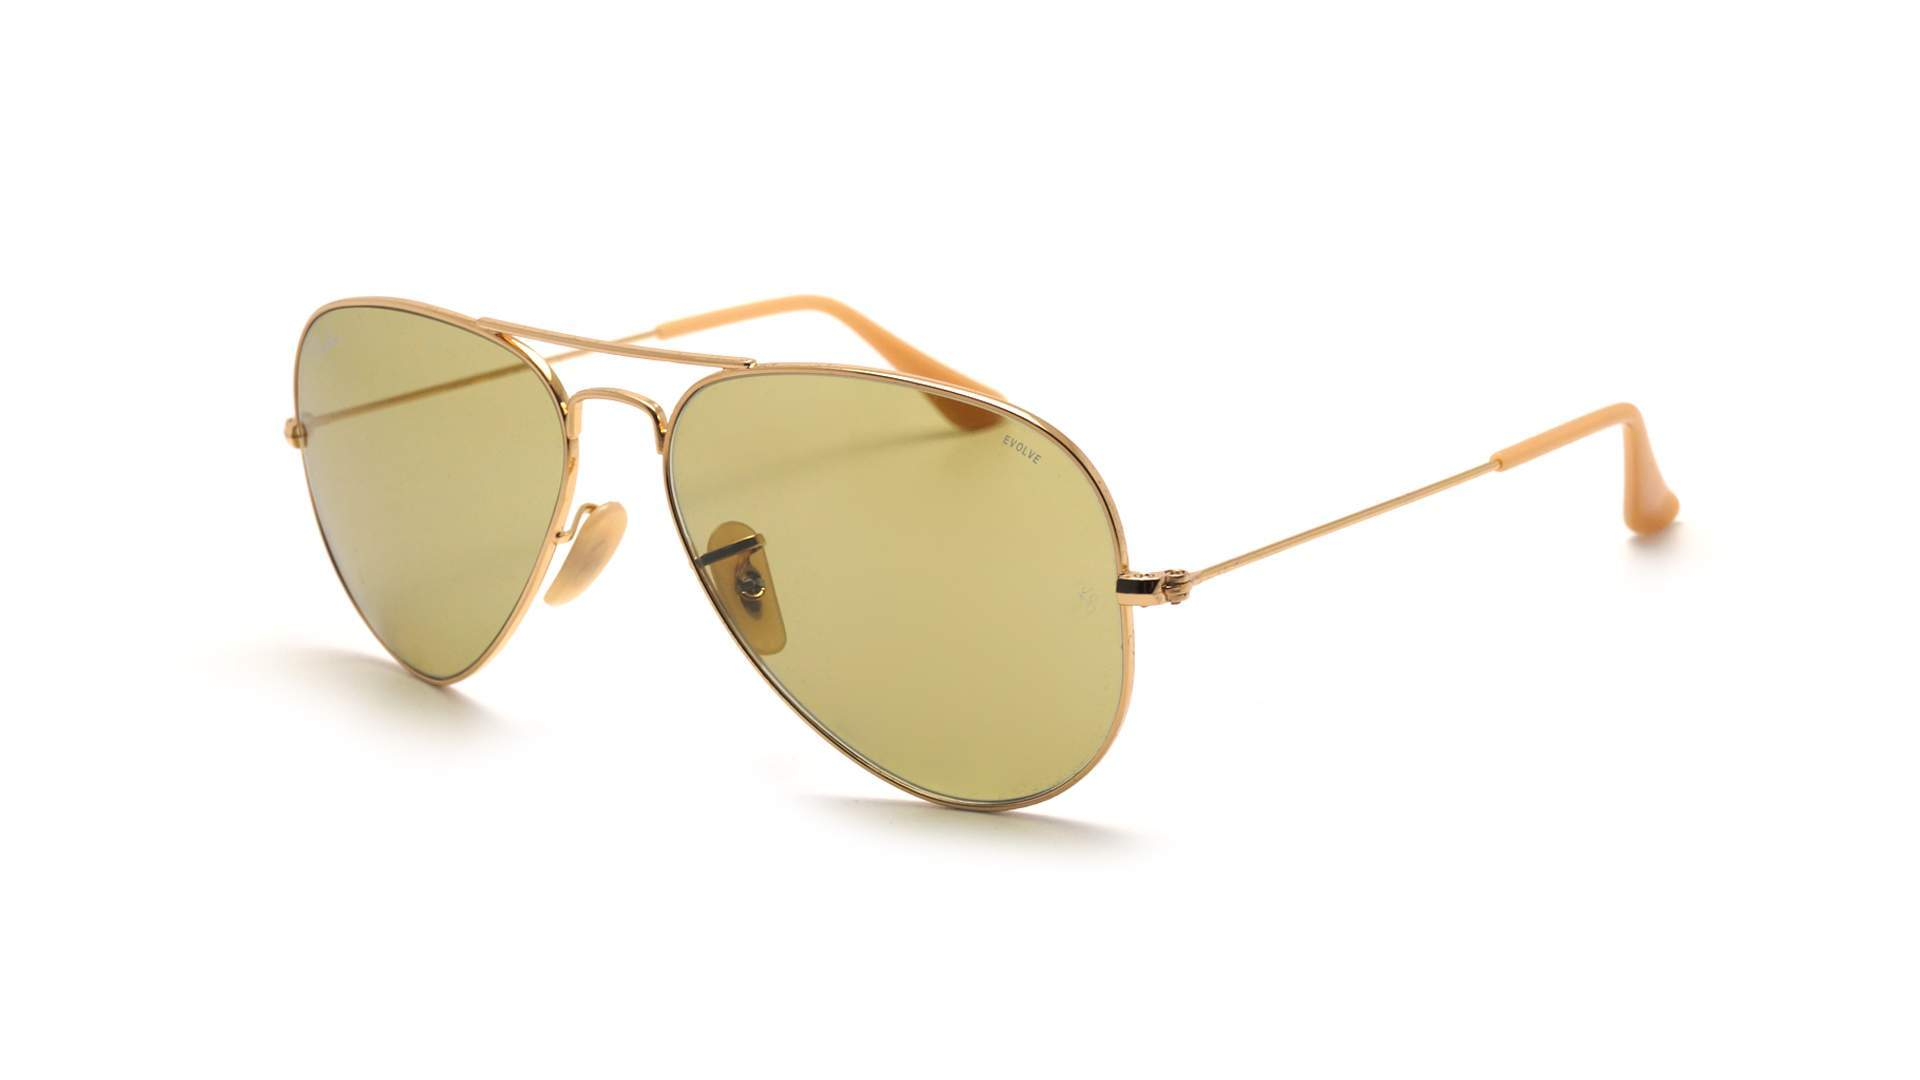 7e72b48e4d Sunglasses Ray-Ban Aviator Evolve Gold RB3025 9064 4C 55-14 Medium  Photochromic